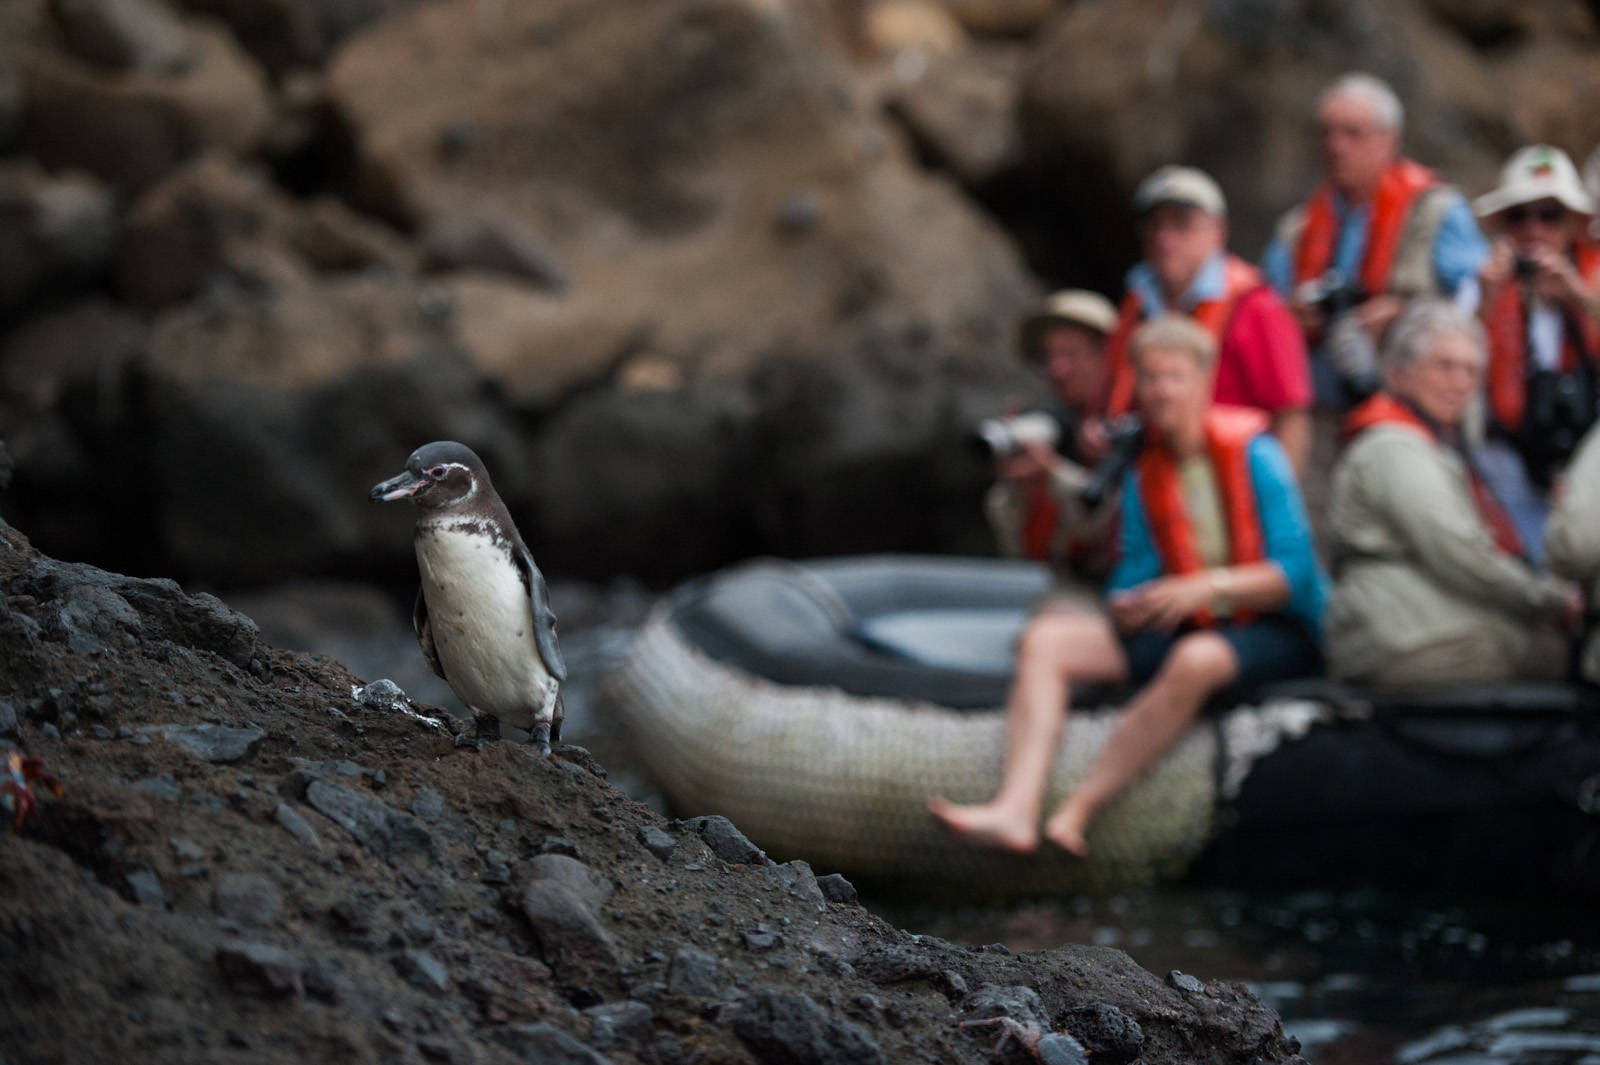 Photo: Tourists photographing a Galapagos penguin (Spheniscus mendiculus) at Tagus Cove in Galapagos National Park.